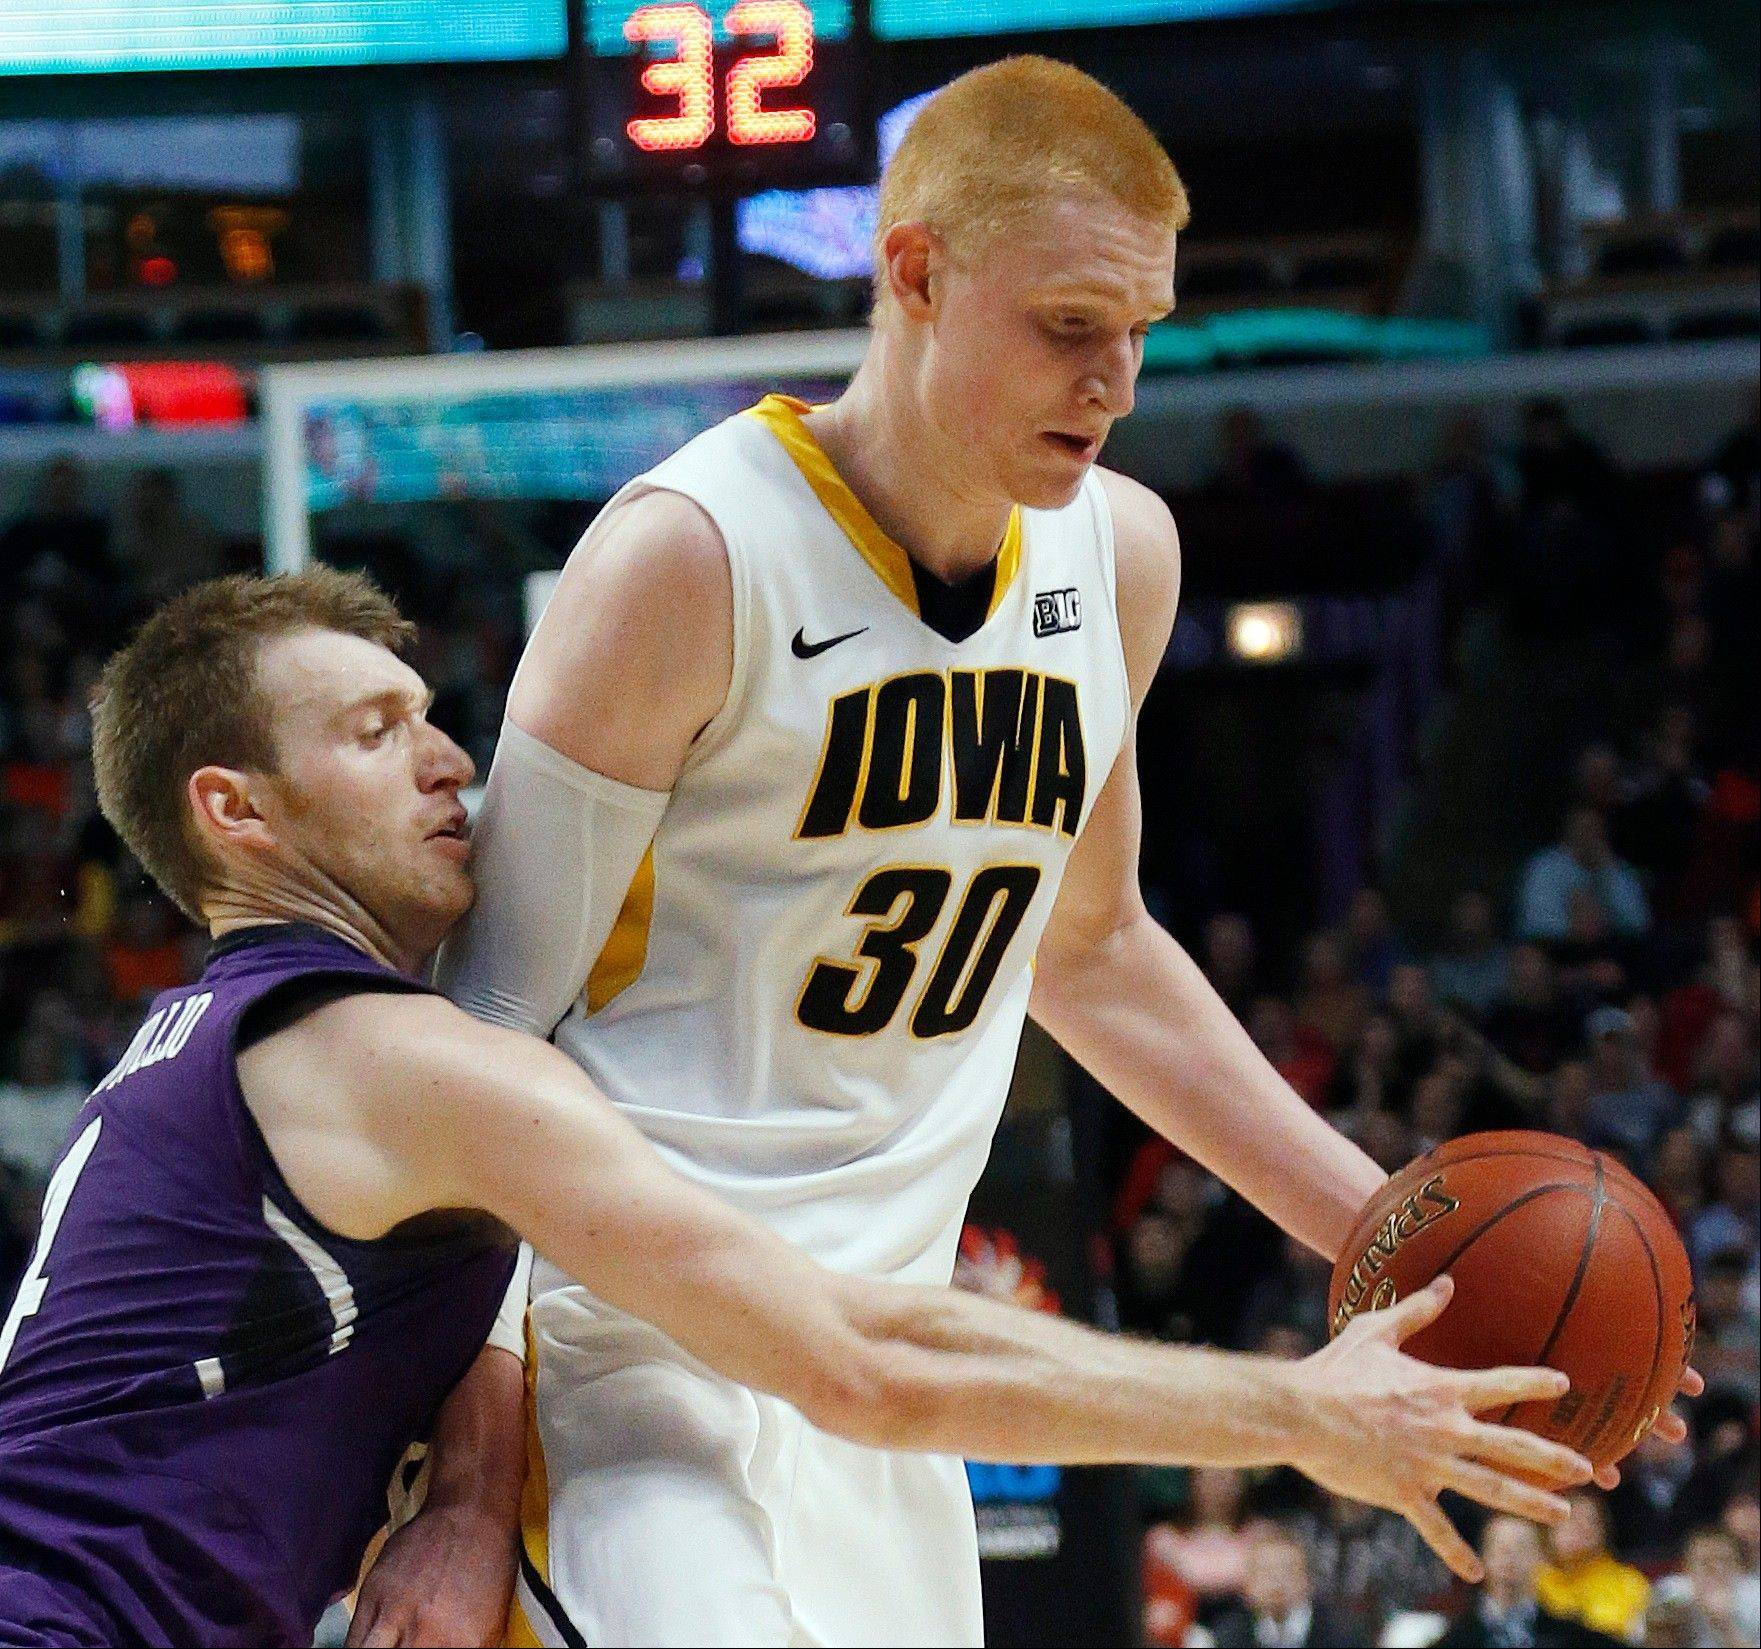 Northwestern's Alex Marcotullio tries to steal the ball from Iowa's Aaron White (30) during the first half.